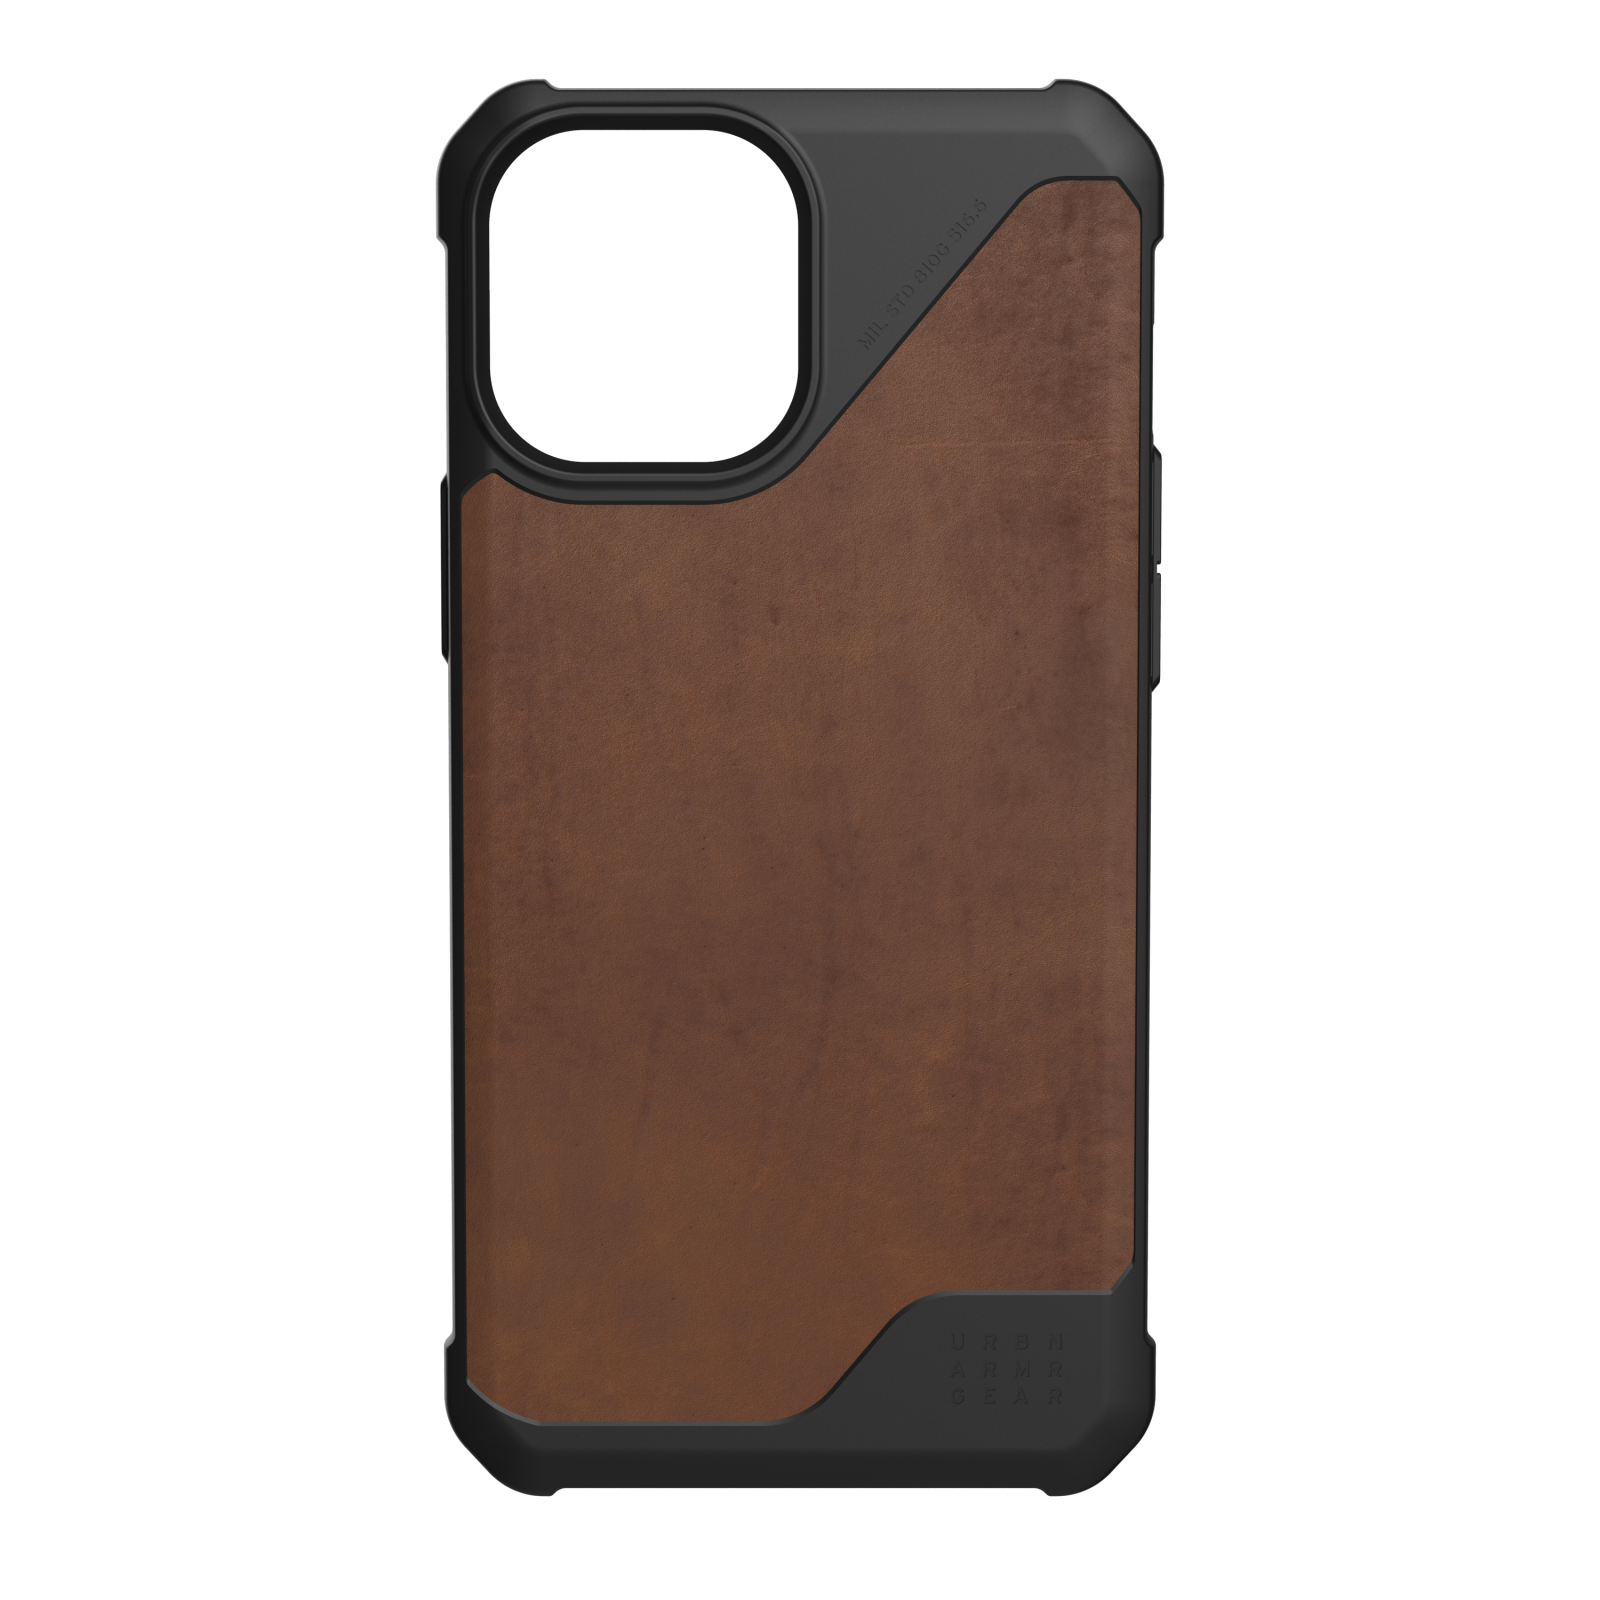 ỐP LƯNG UAG METROPOLIS LT CHO IPHONE 12 Pro Max [6.7-INCH] - Leather Brown